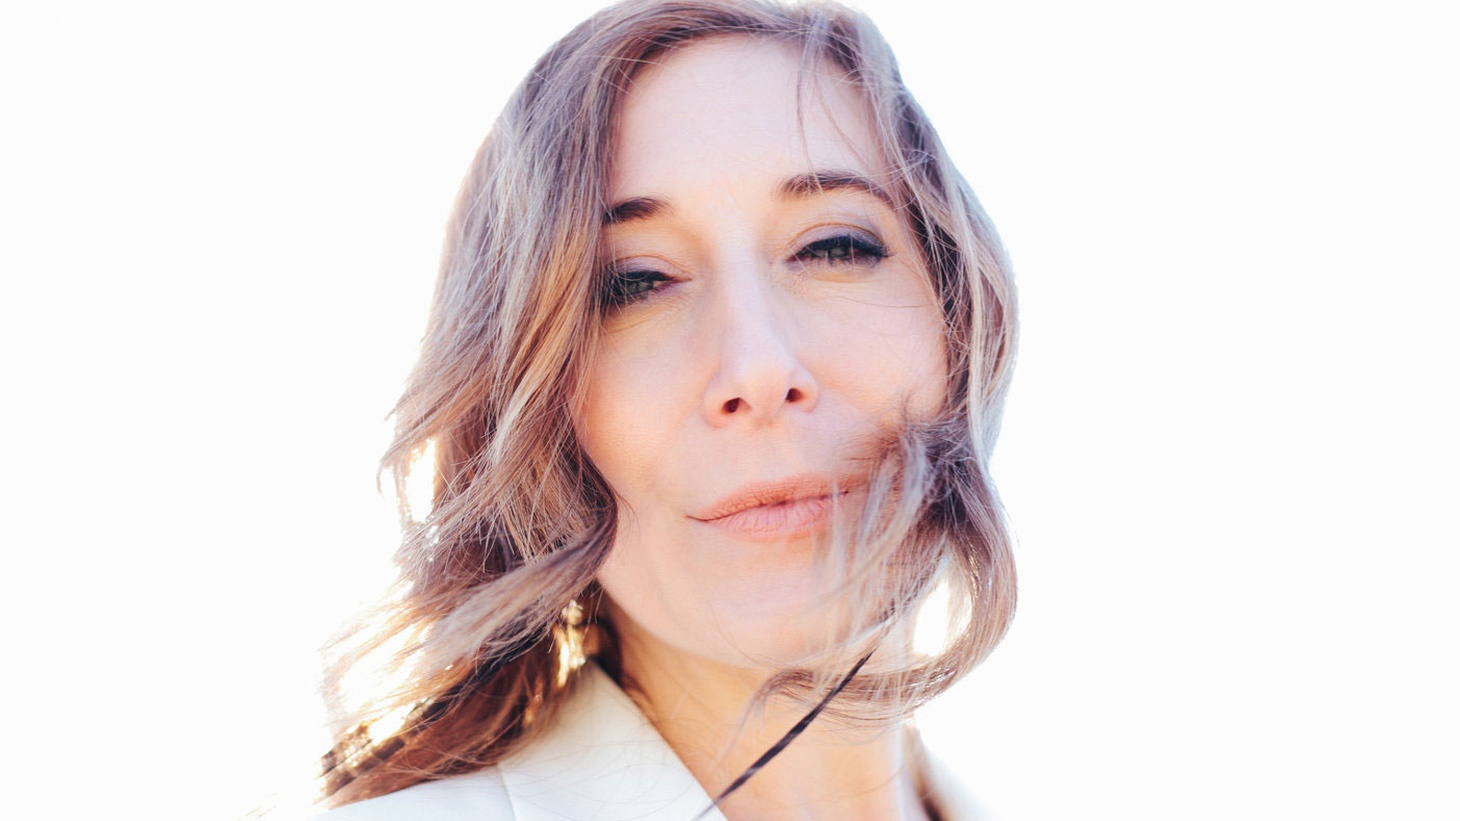 """Austin-based Erika Wennerstrom is taking a break from fronting Heartless Bastards, to deliver her solo debut out in March. Finding strength in vulnerability, Wennerstrom ultimately finds liberation. Hear her soar on """"Extraordinary Love""""."""